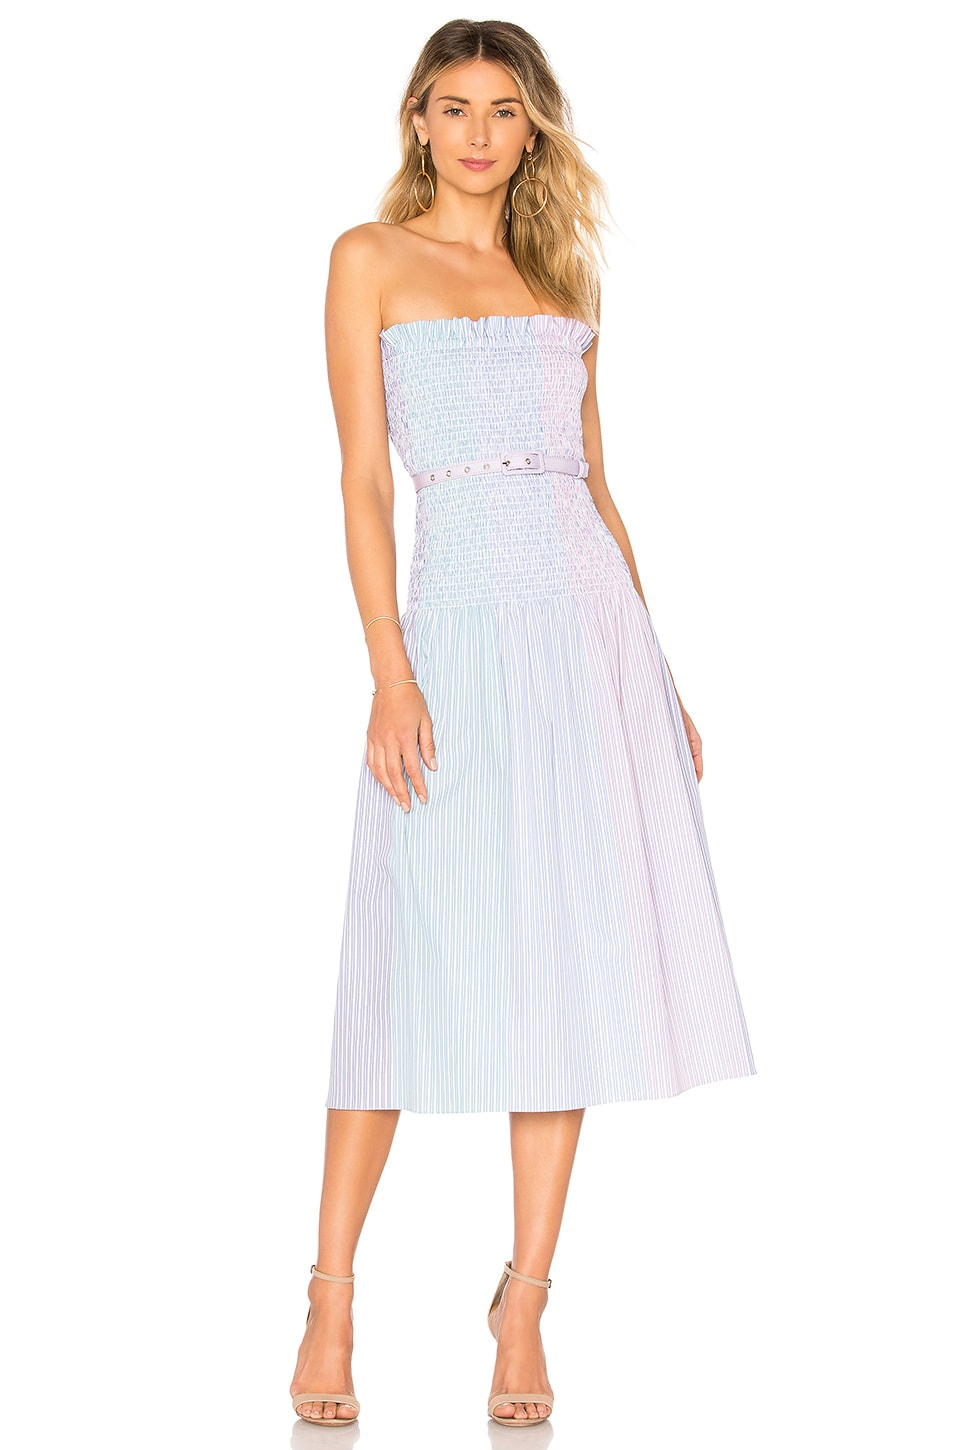 Petersyn Nicky Belted Dress in Cocktail